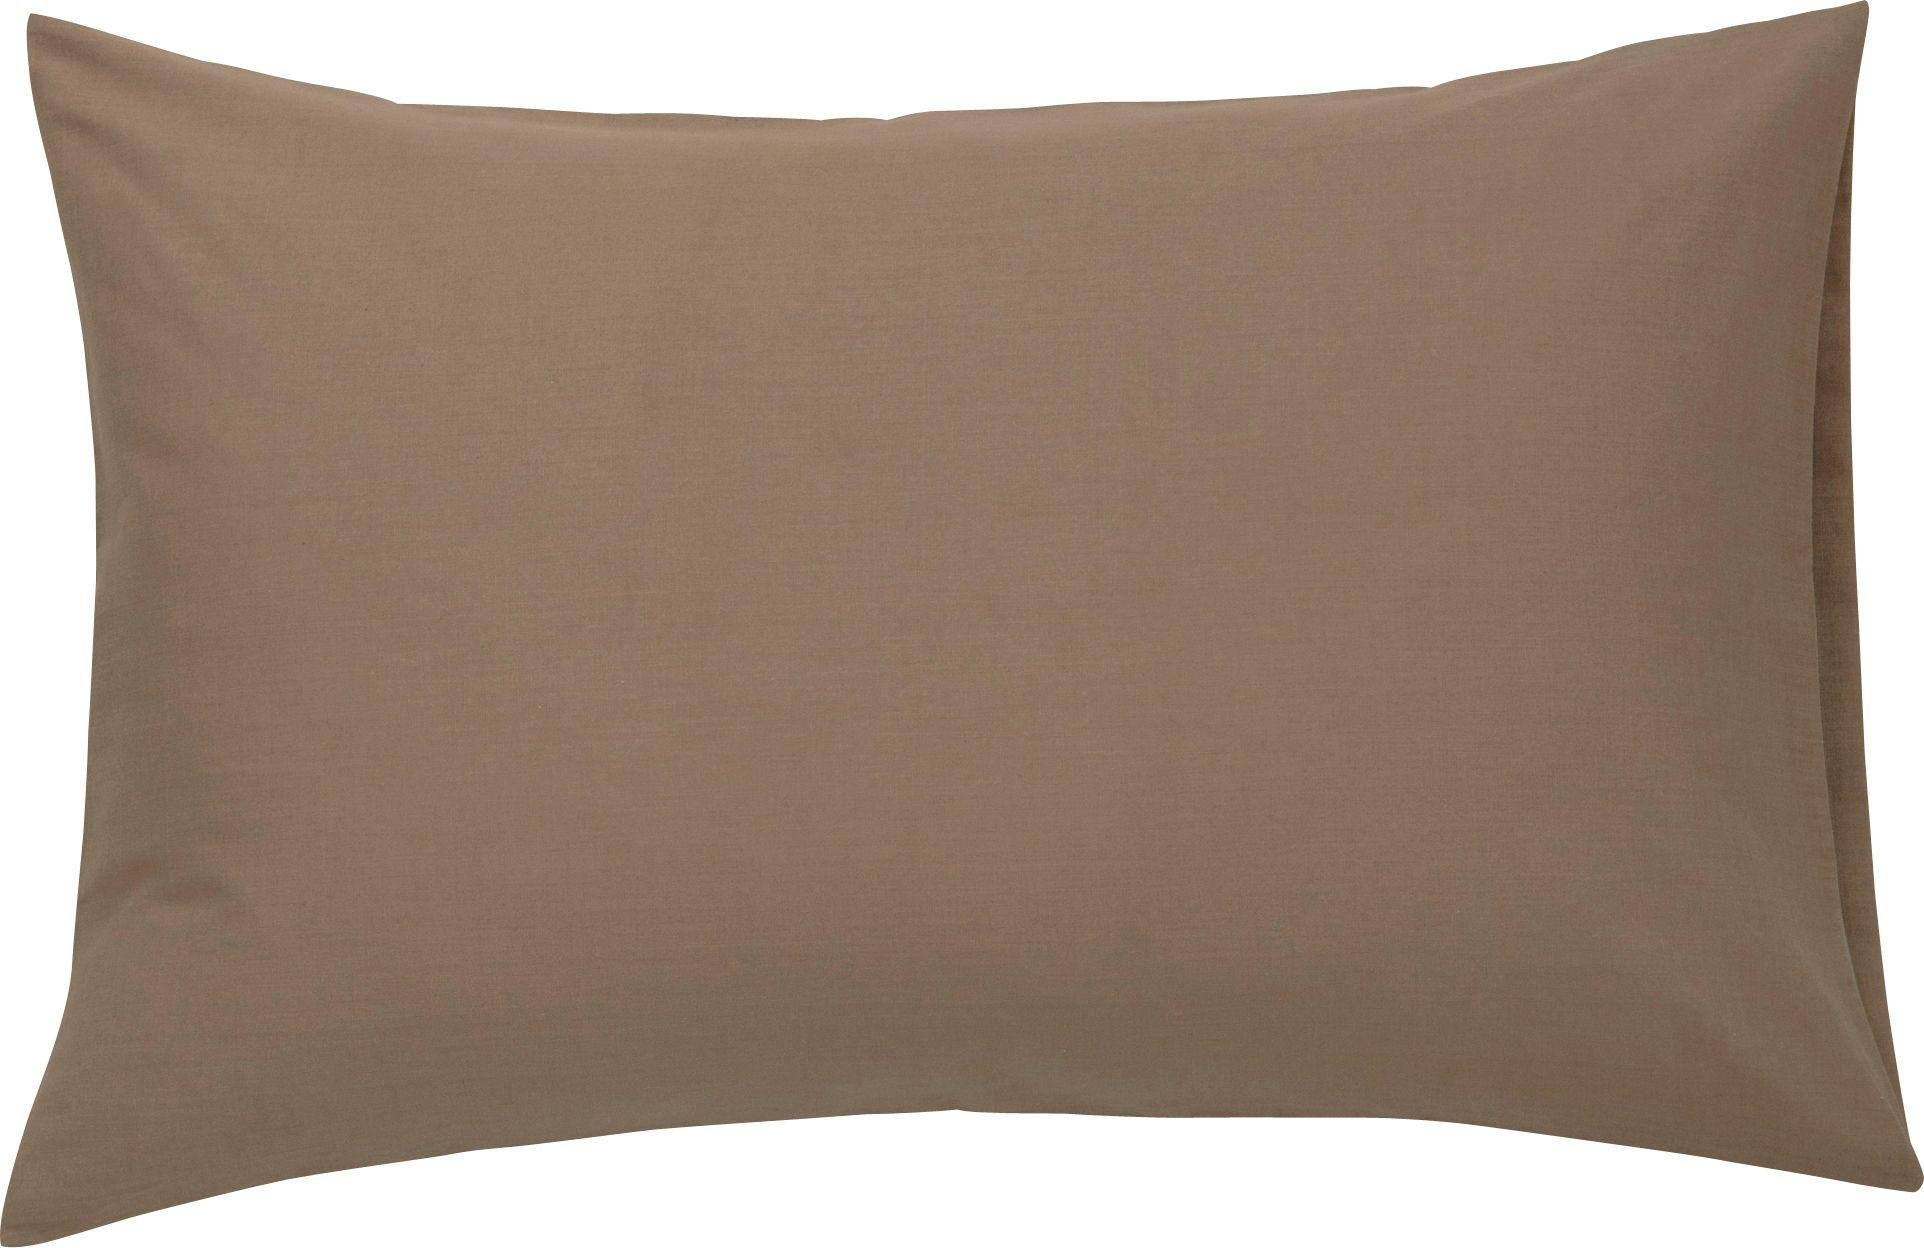 ColourMatch - Cafe Mocha Housewife Pillowcase - 2 Pack